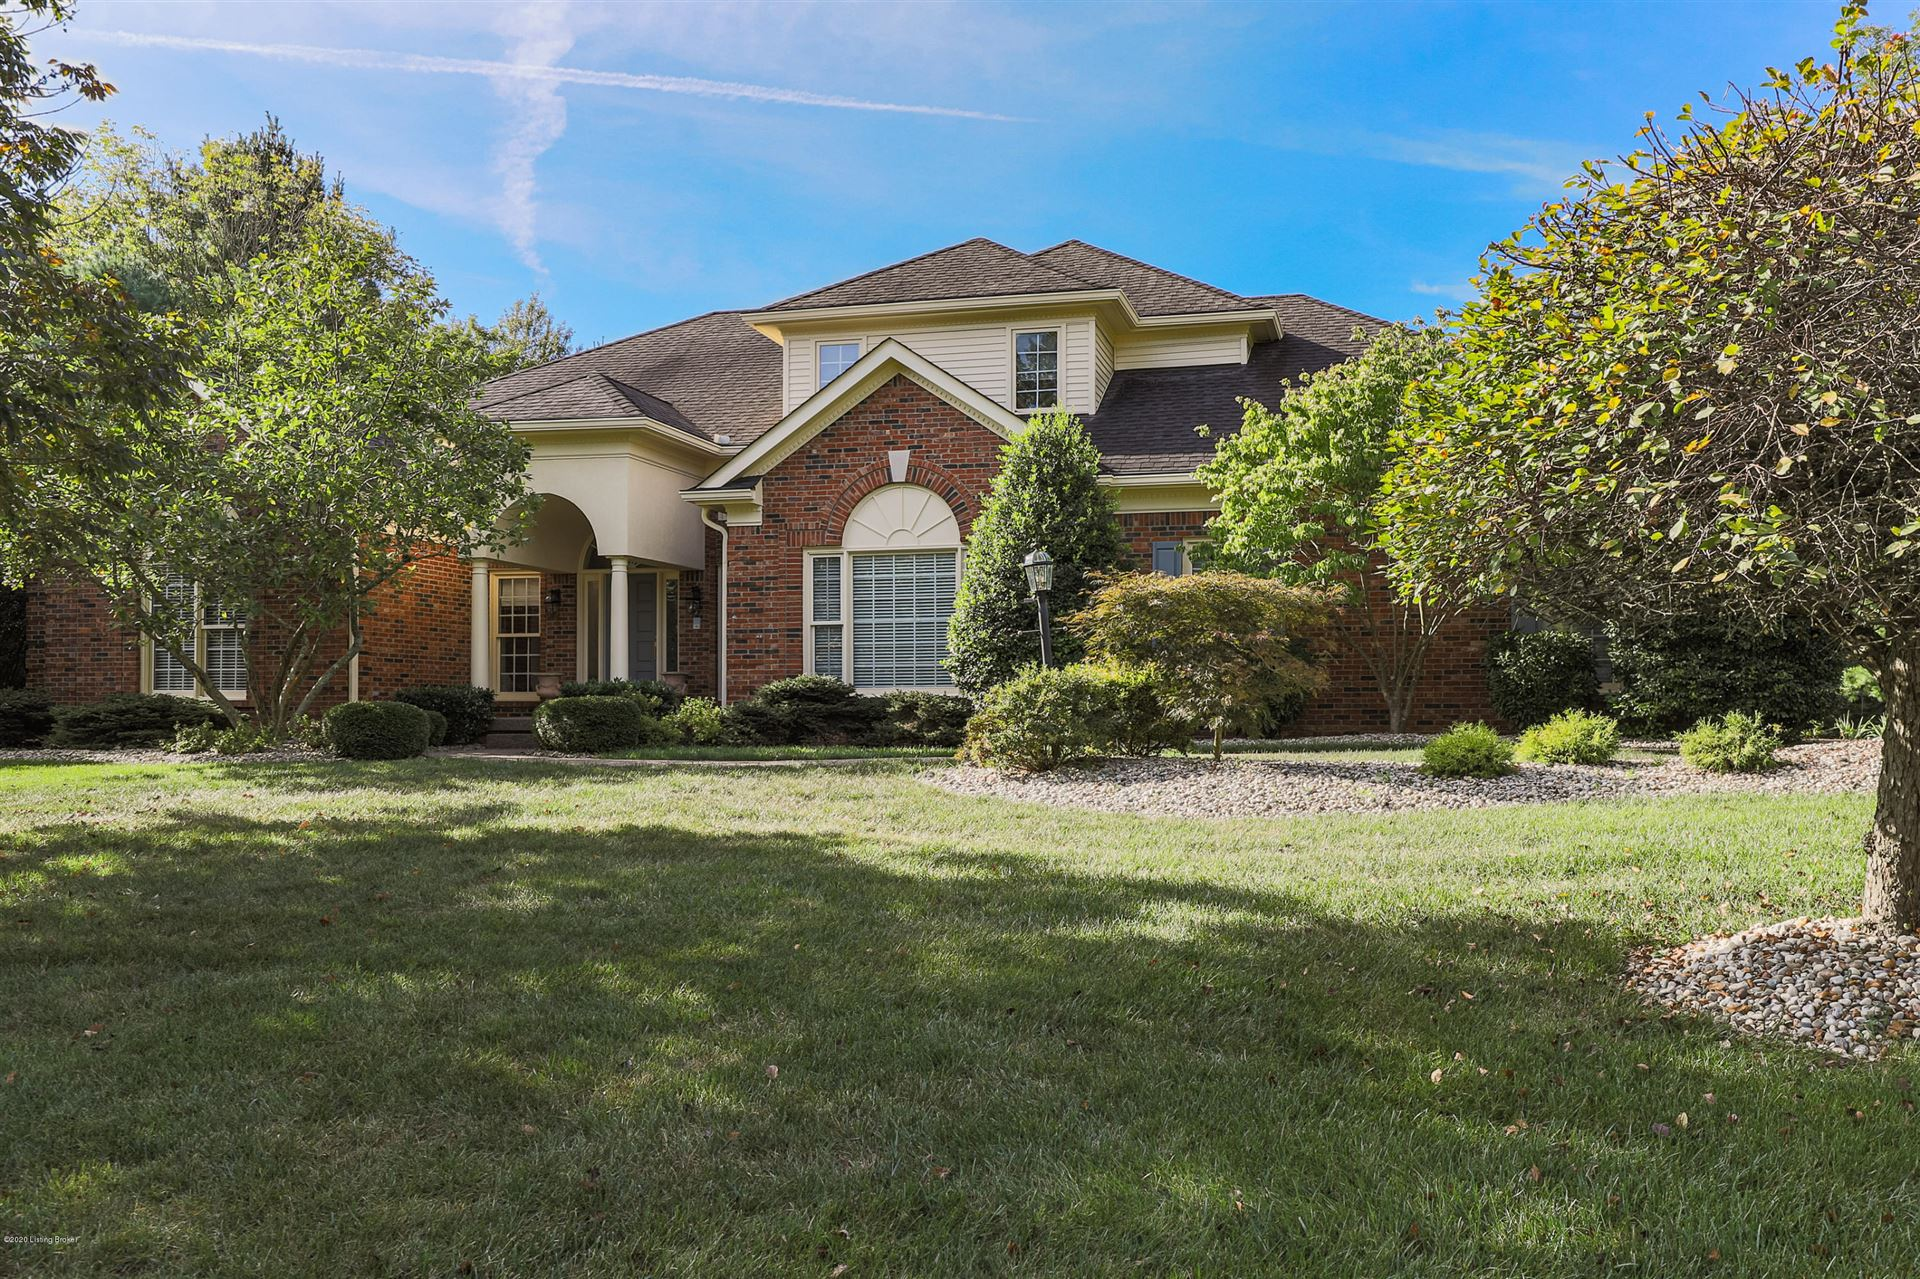 Property Image Of 6523 Harrods View Cir In Prospect, Ky